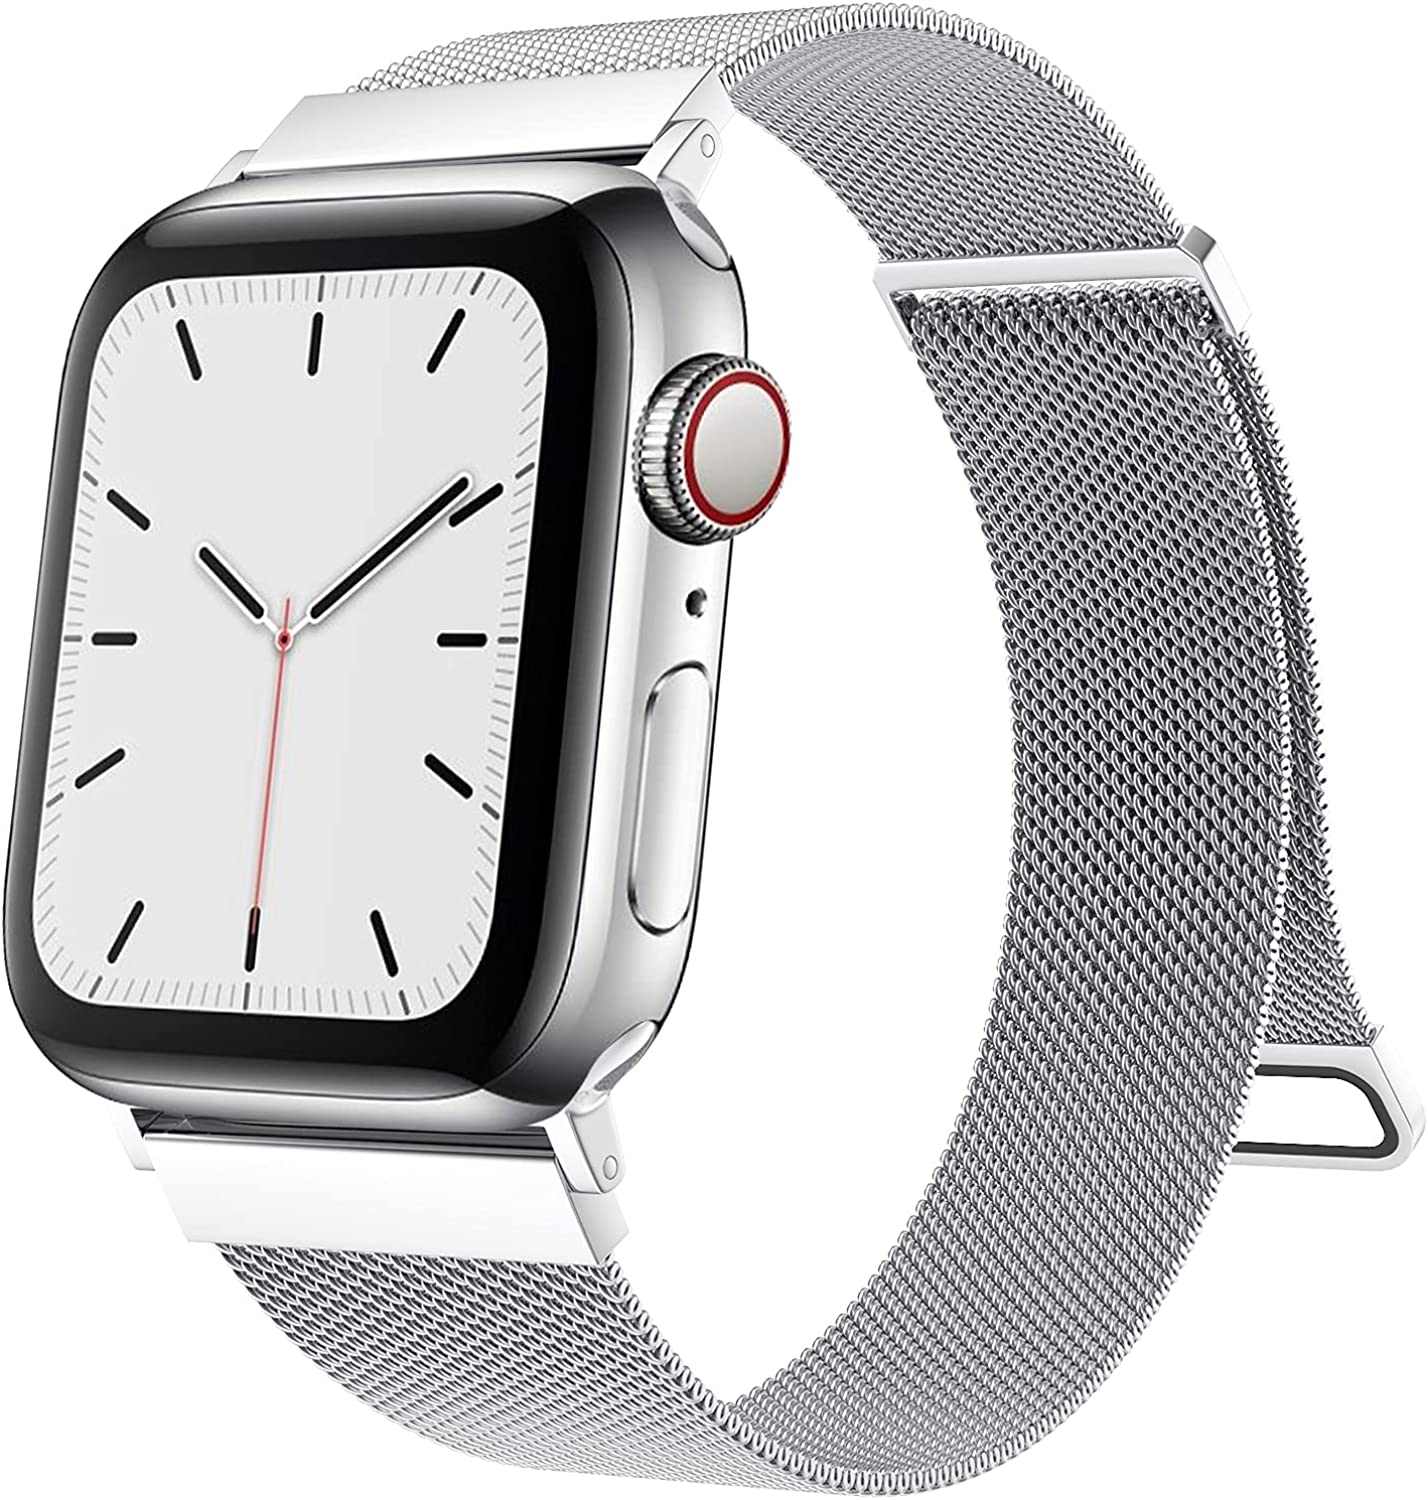 Cigamoya Compatible with Apple Watch Band 38mm 40mm 42mm 44mm Women Men, Super Adjustable Mesh Stainless Steel Wristbands with Strong Magnetic Clasp for iWatch Bands Series 6/SE/5/4/3/2/1